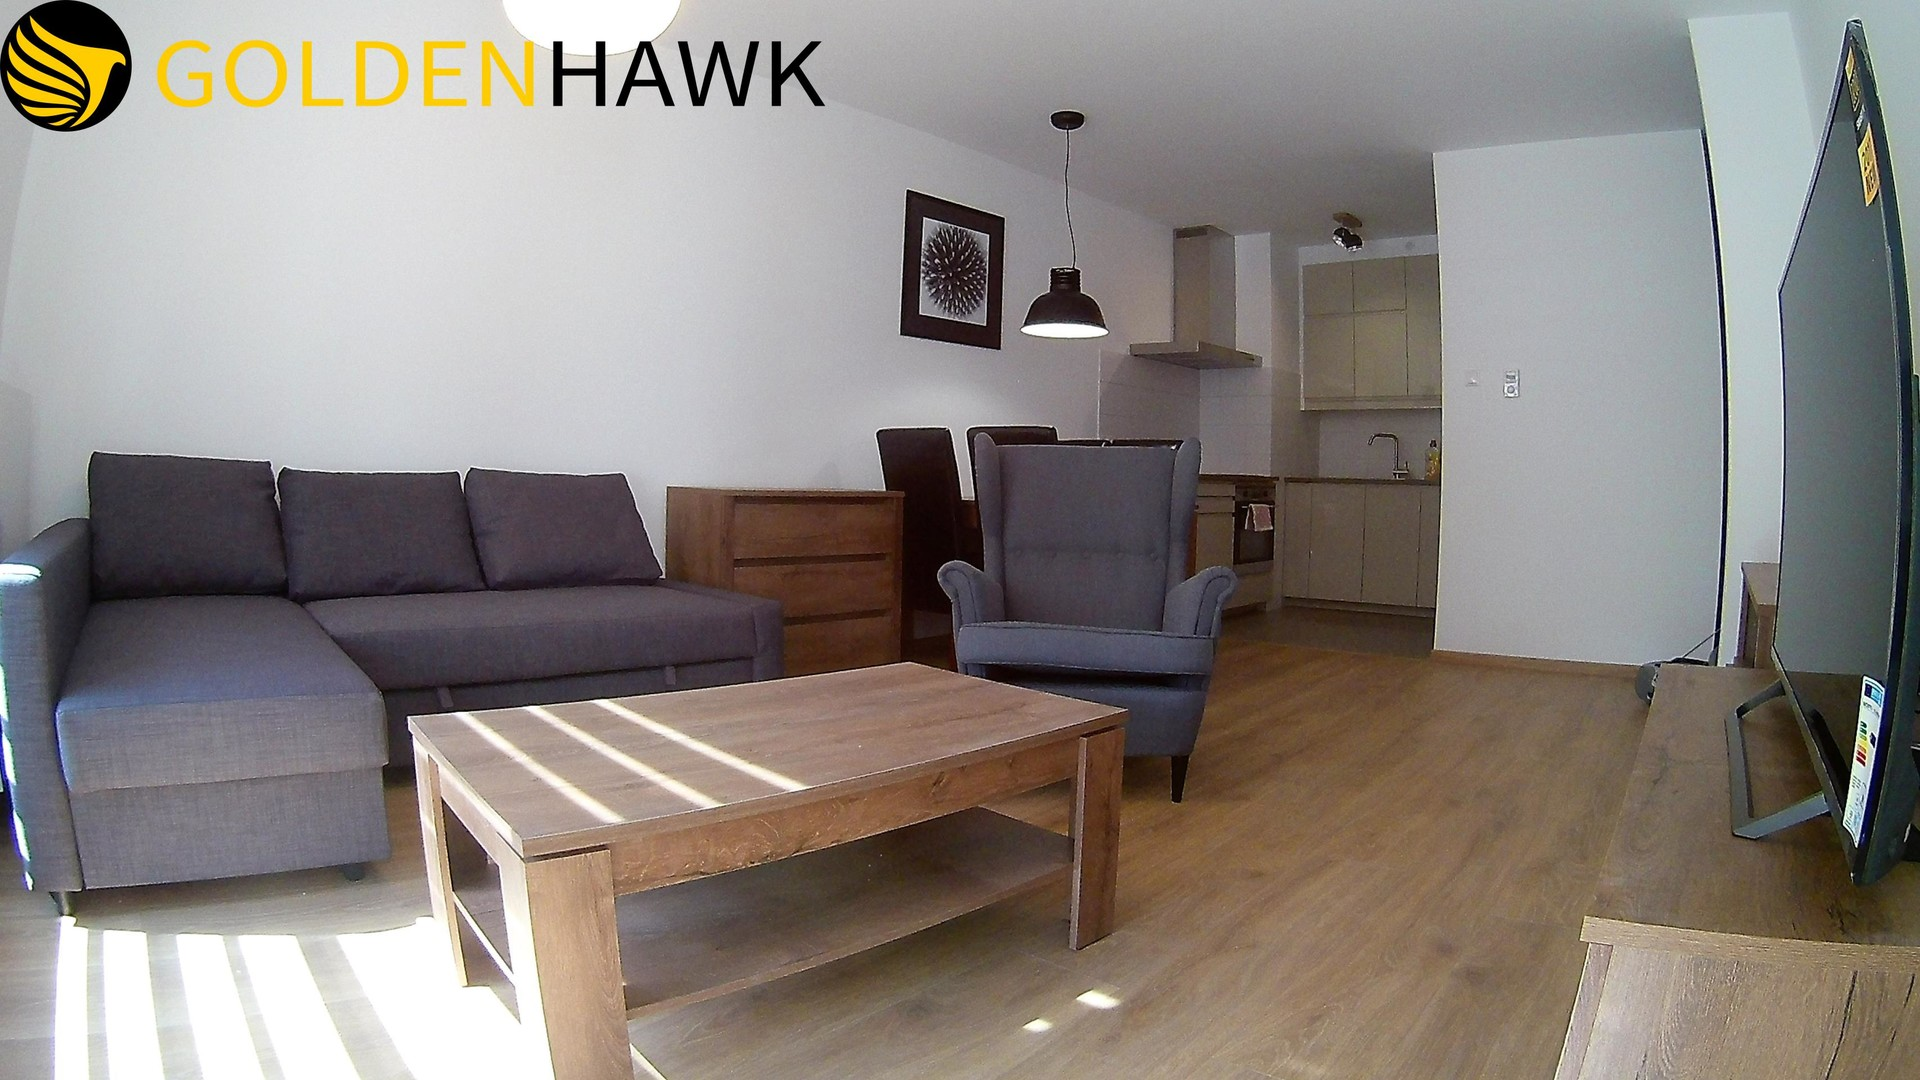 Rooms: Two Rooms Apartment Of 48 M² For Rent In The Center Of